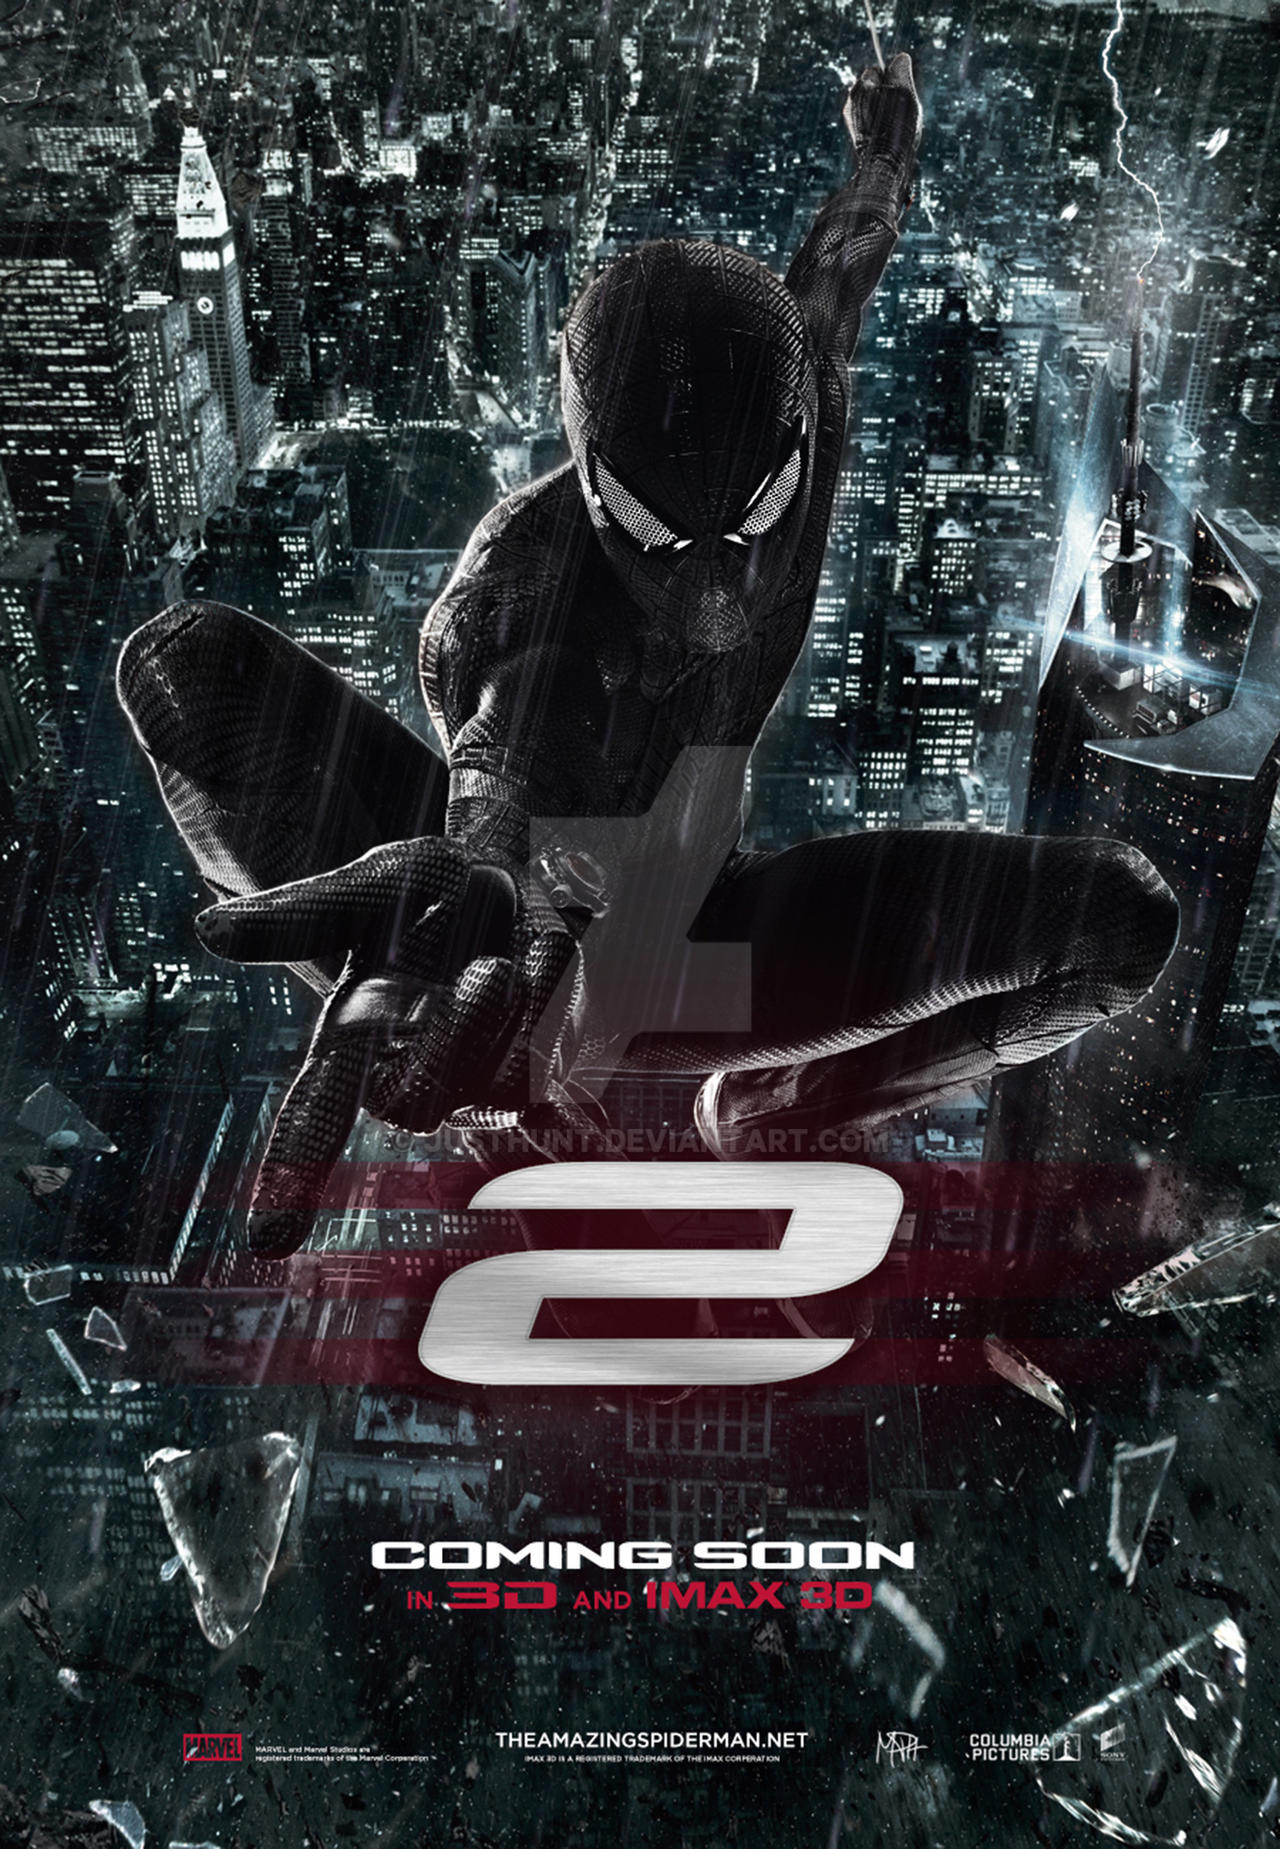 The Amazing Spider Man 2 Movie Poster By Justhunt On